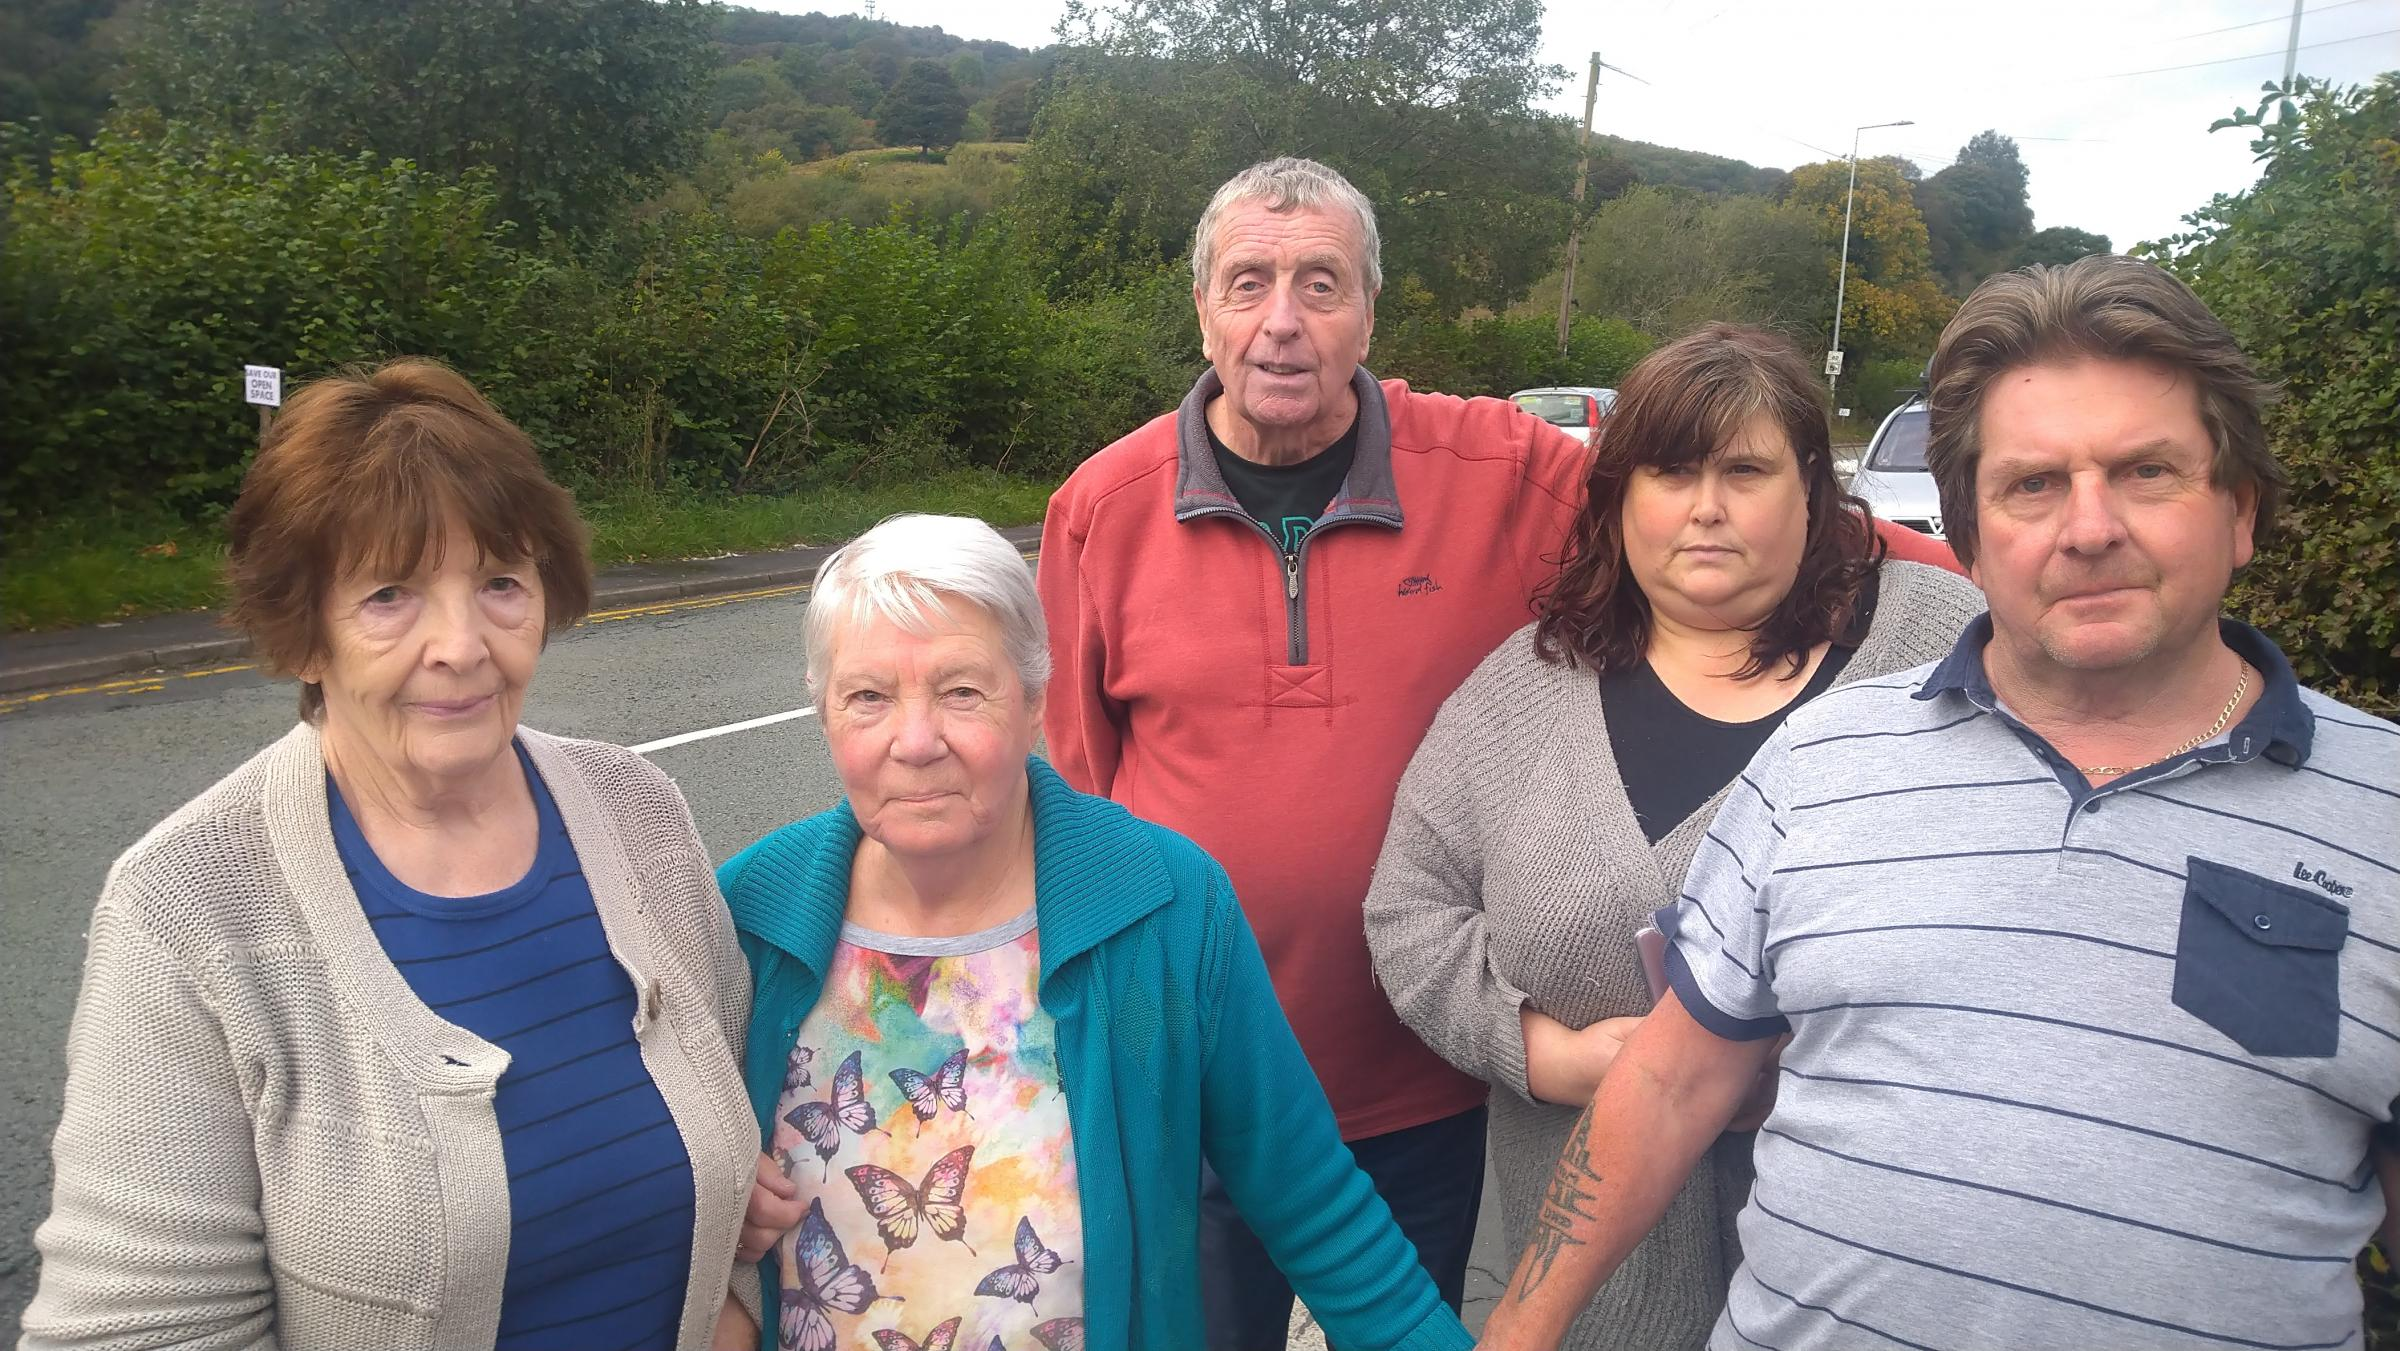 Residents continue to make a stand against development of Abermorddu field